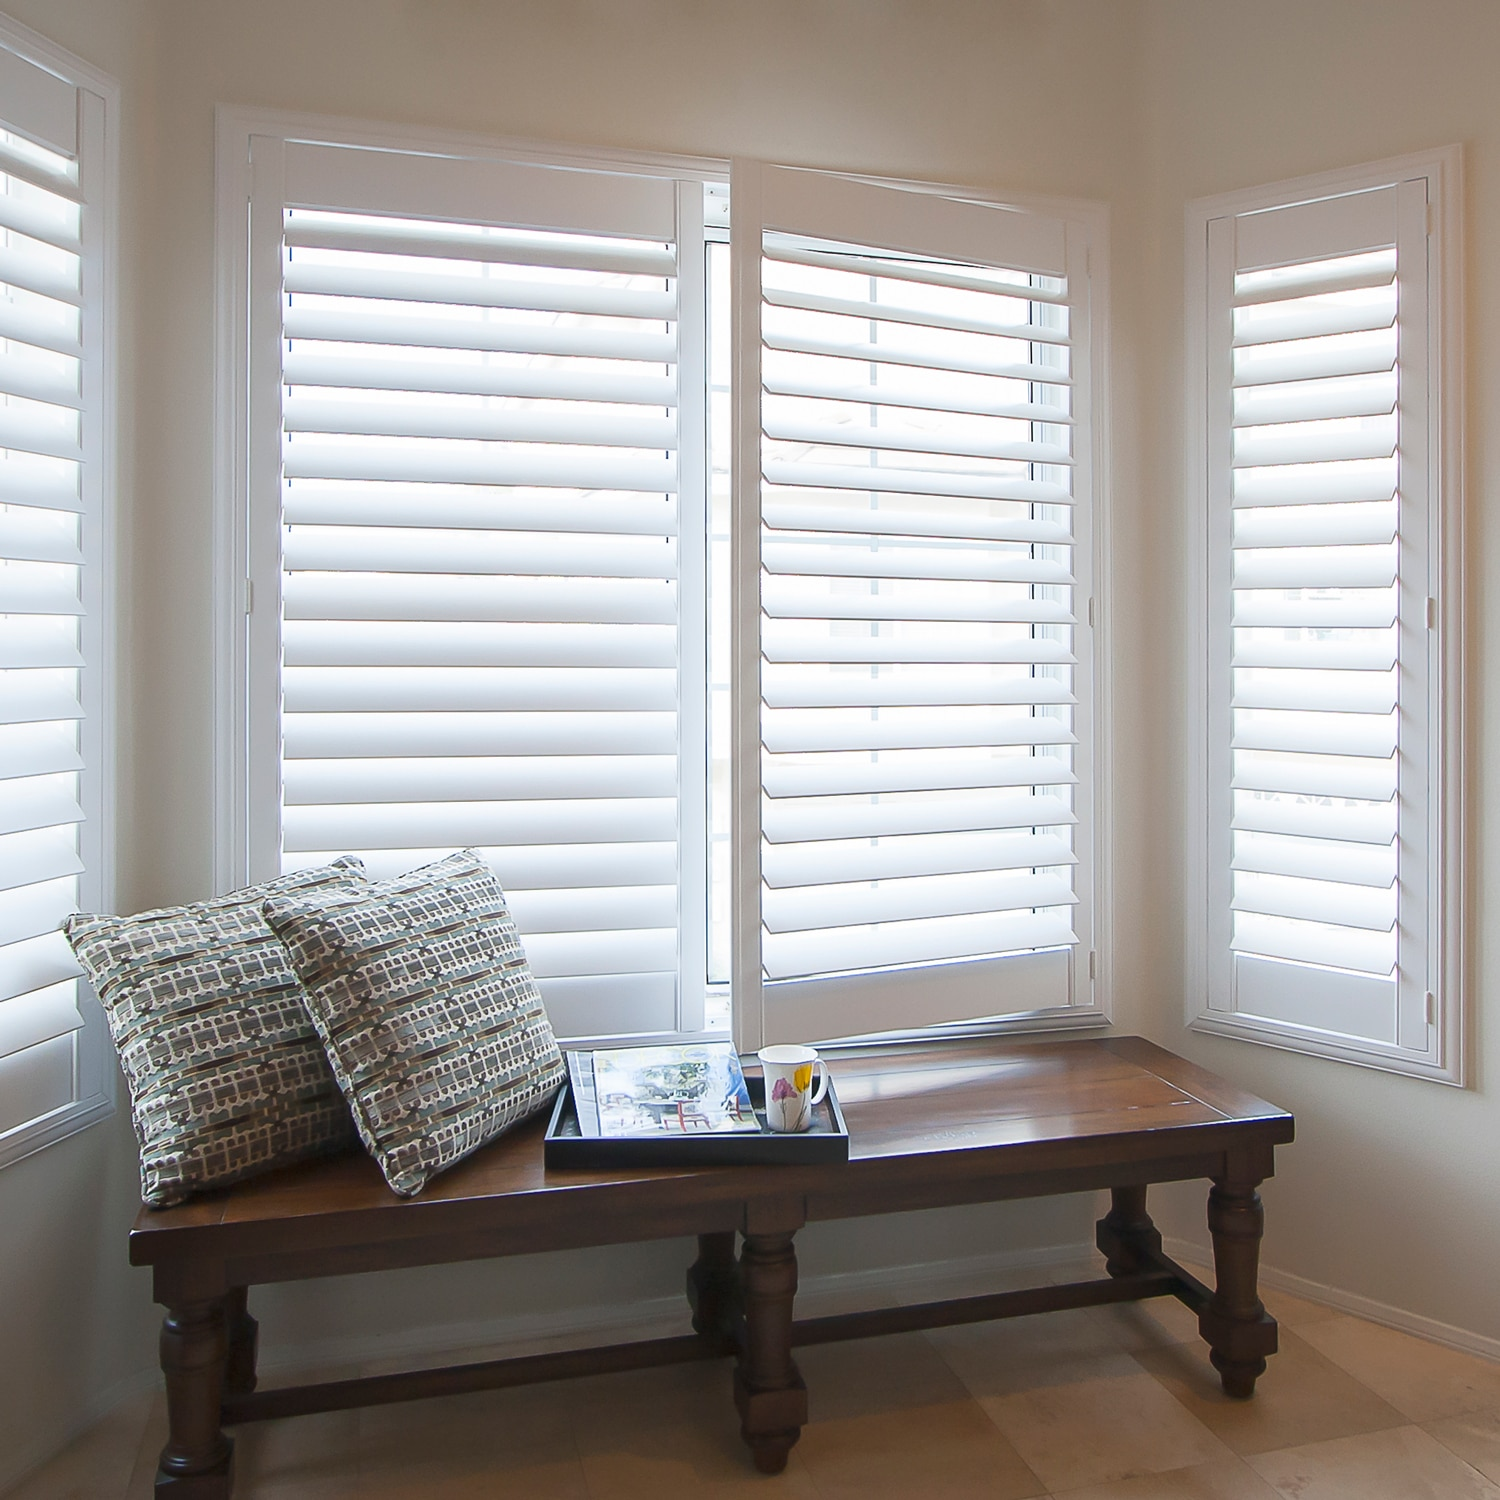 Home Decorators Collection Blinds Installation 28 Images Home Decorators Collection Blinds